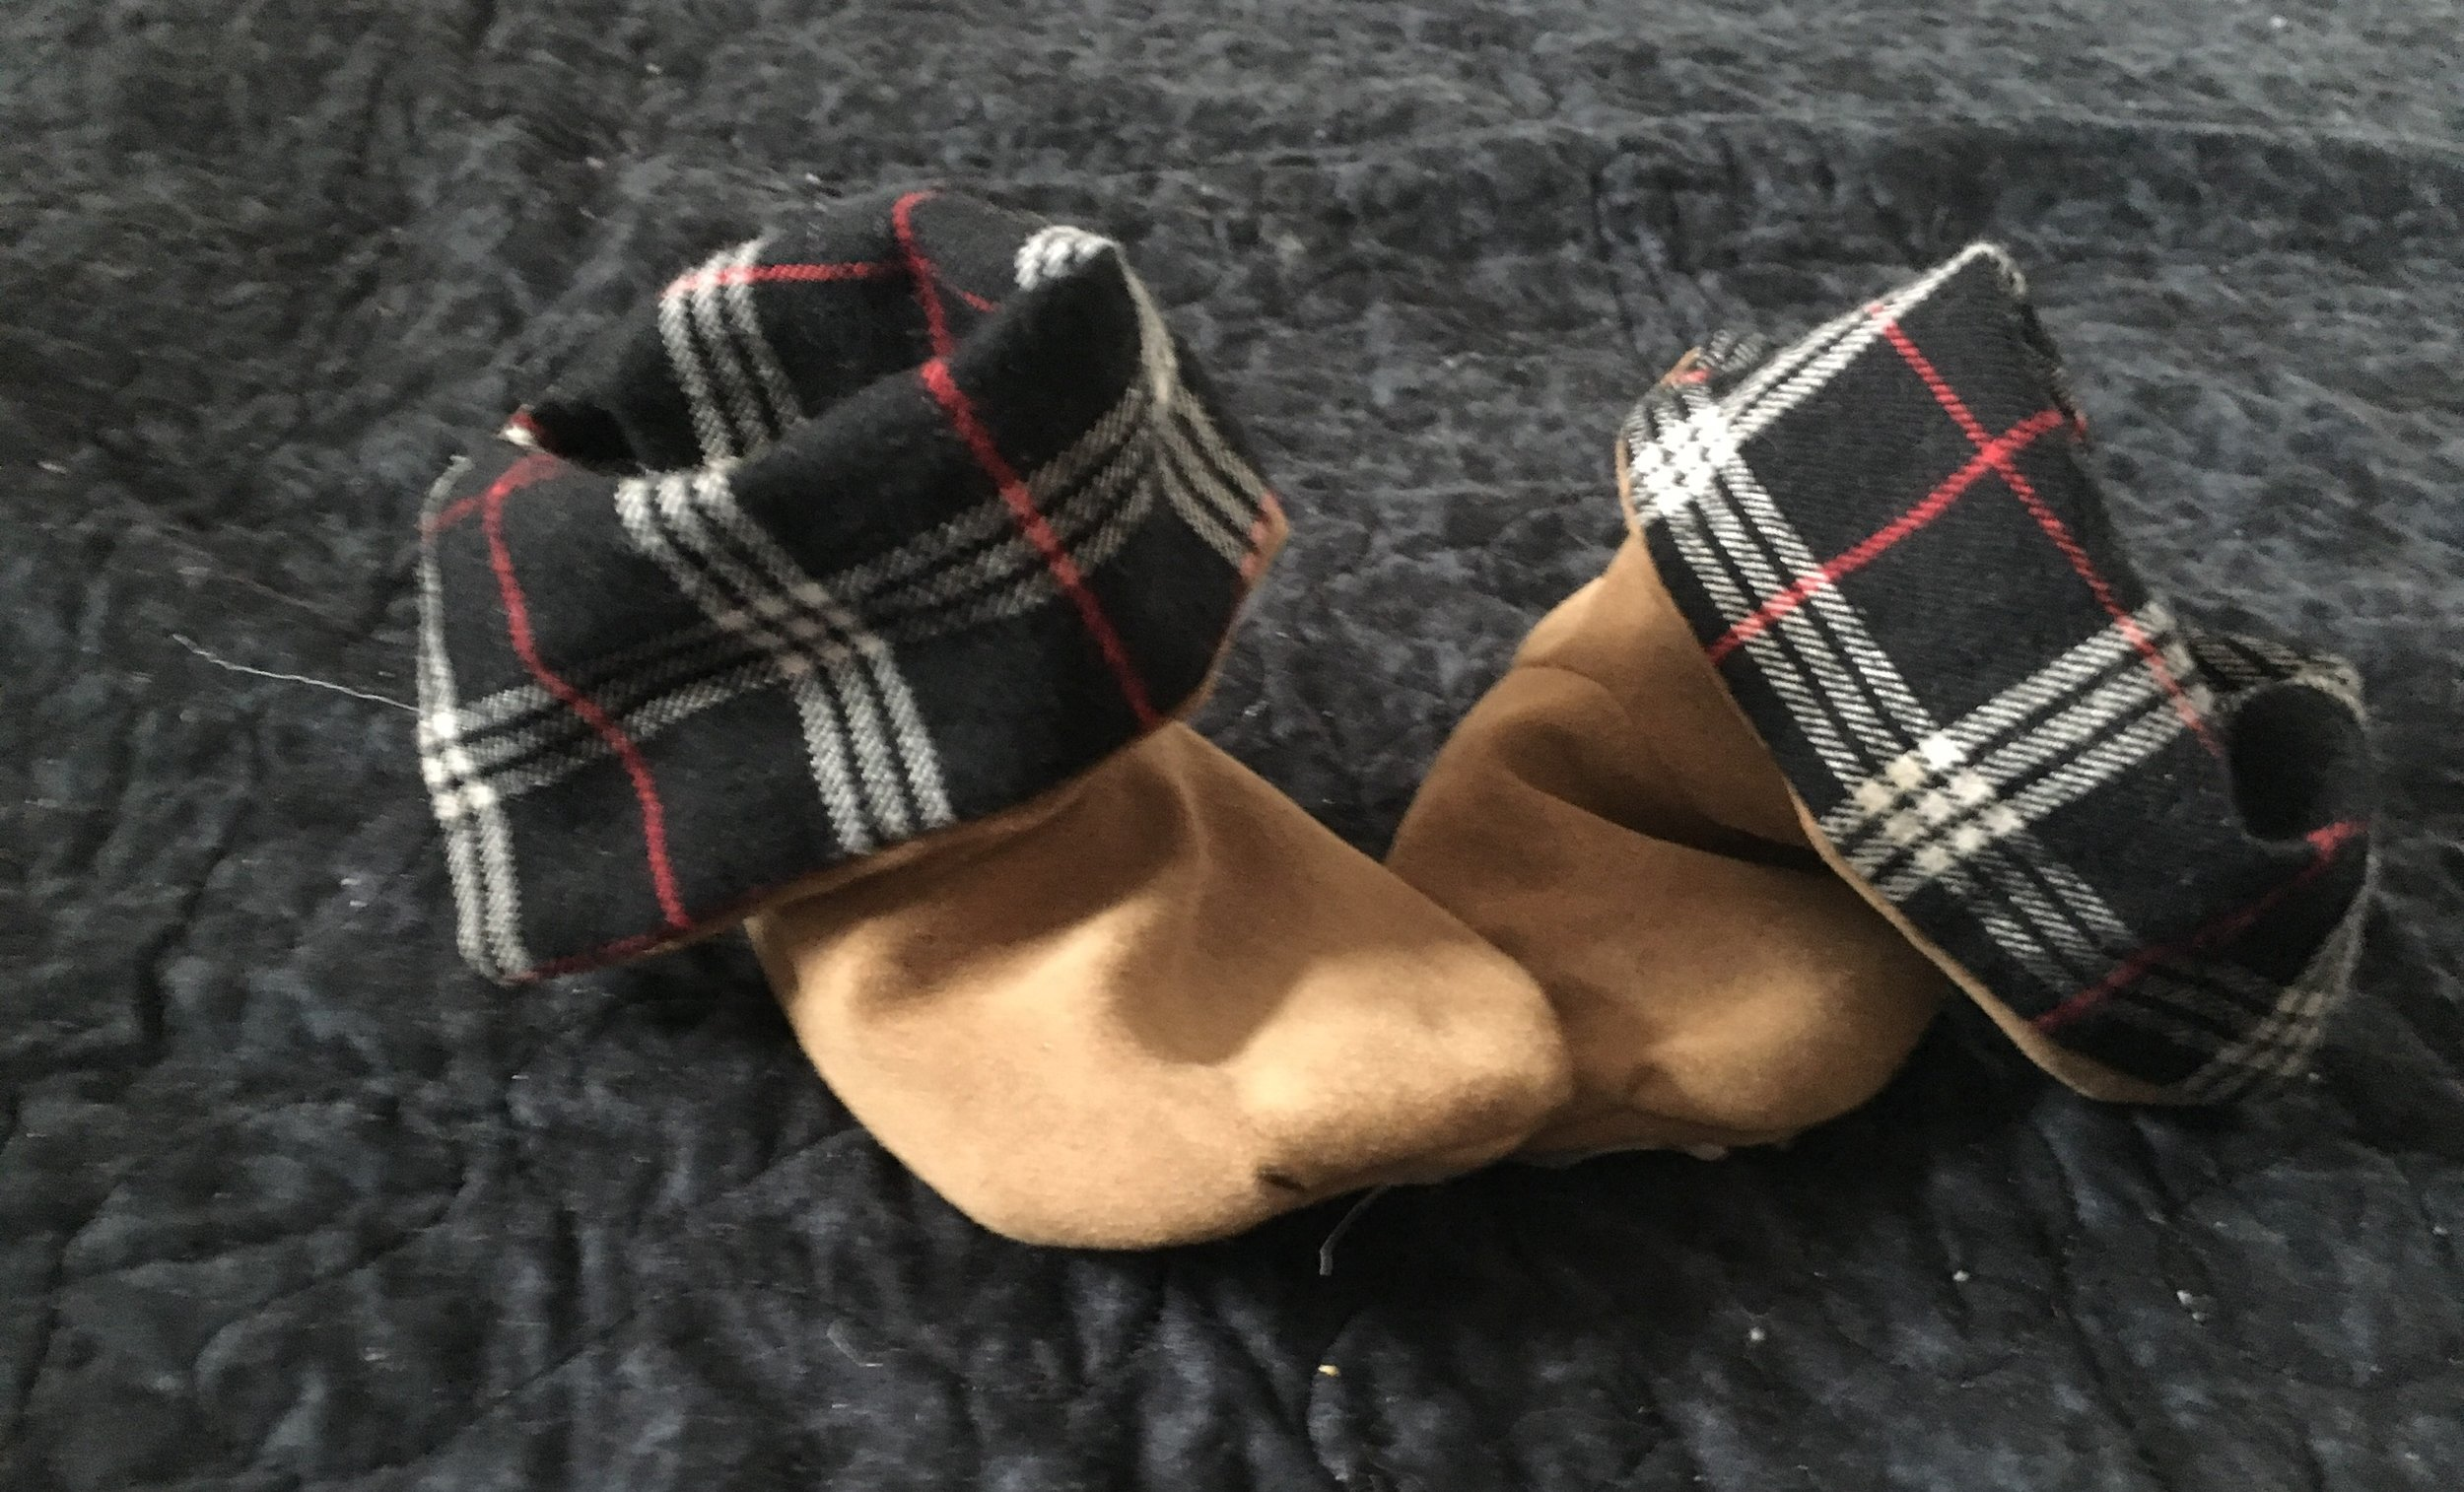 - aaaaand some baby booties! The outside is from an insane men's shirt I found at the thrift shop and used (along with a second hand monkey costume)to make a baby Ewok costume for halloween!